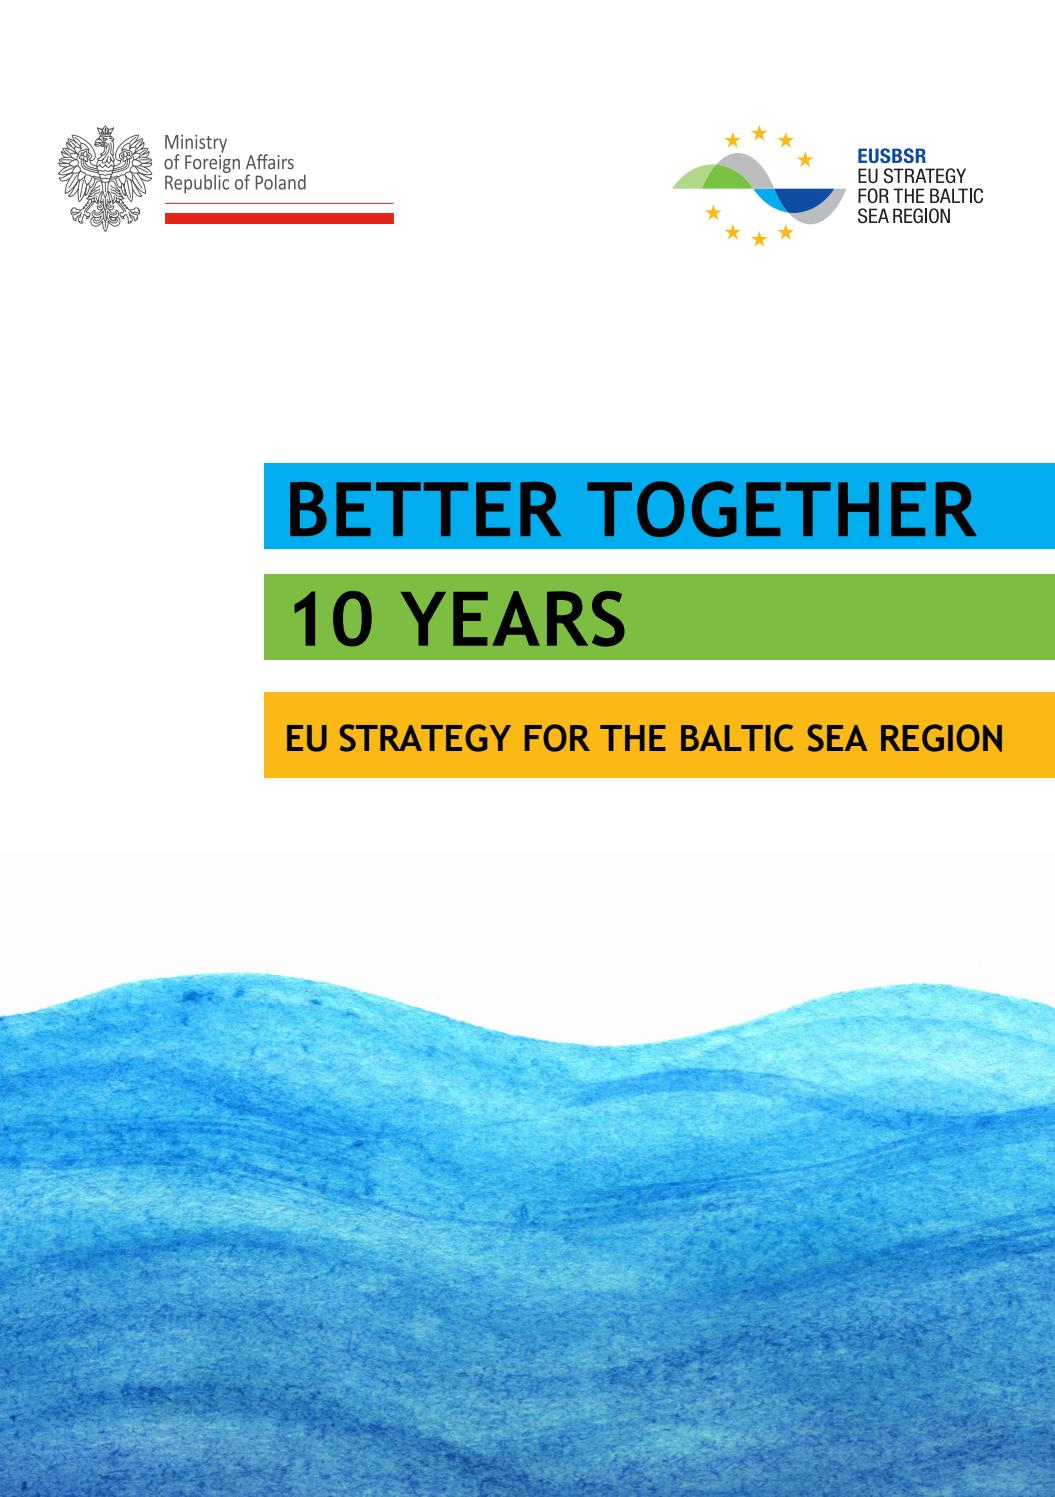 Better Together - 10 Years of the EU Strategy for the Baltic